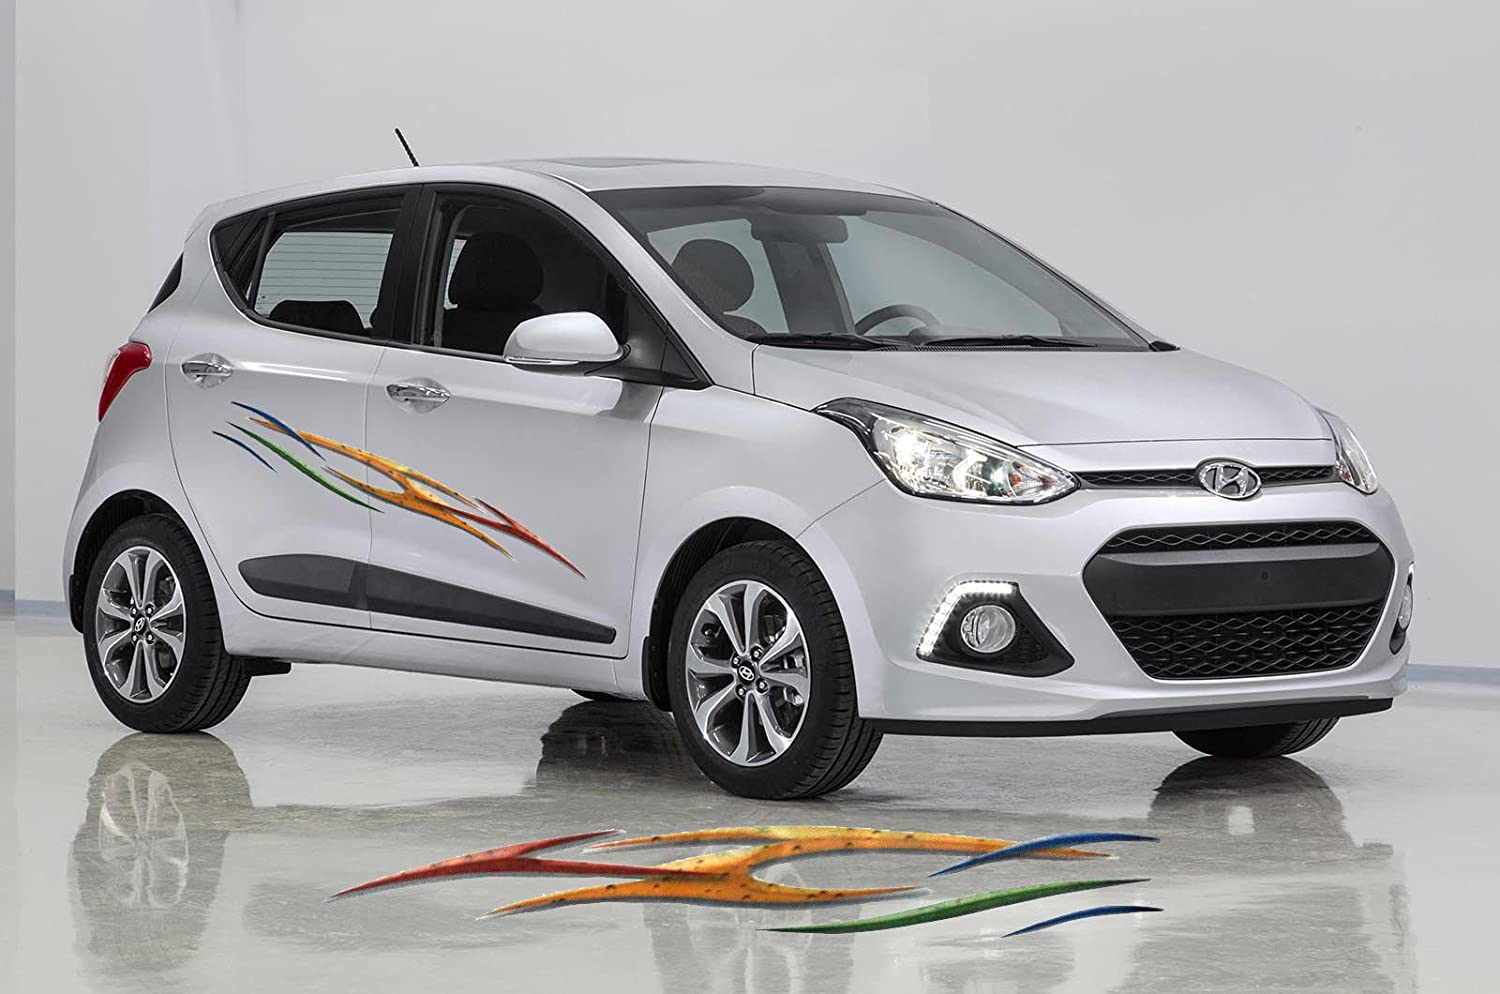 Generic hyundai i10 car graphics 2 side decal vinyl decal body sticker amazon in car motorbike